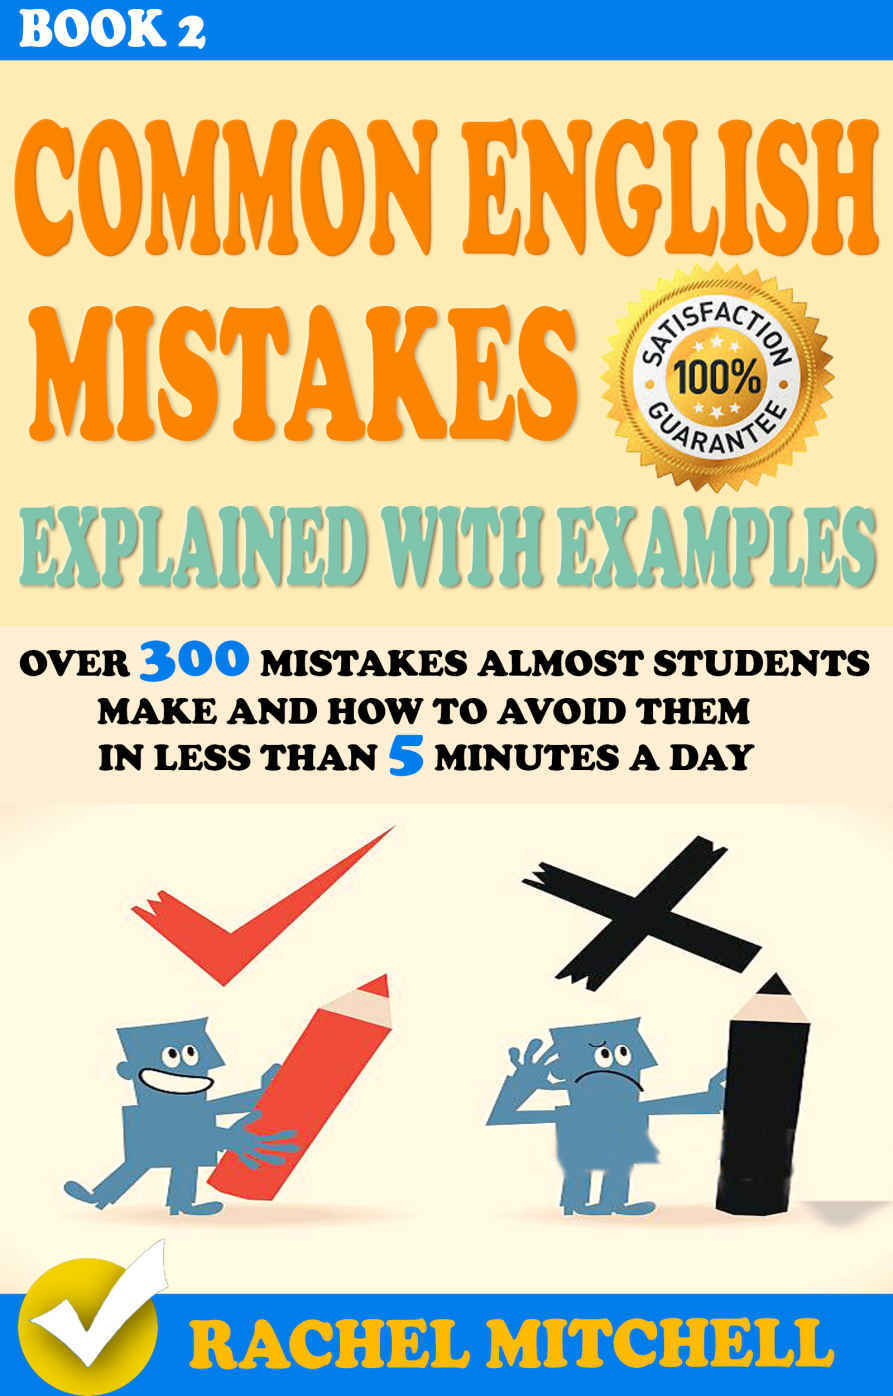 обложка книги Common English Mistakes Explained With Examples : Over 300 Mistakes Almost Students Make and How To Avoid Them In Less Than 5 Minutes A Day (Book 2) (Common ... and How To Avoid Them In Less Than 5 Min)